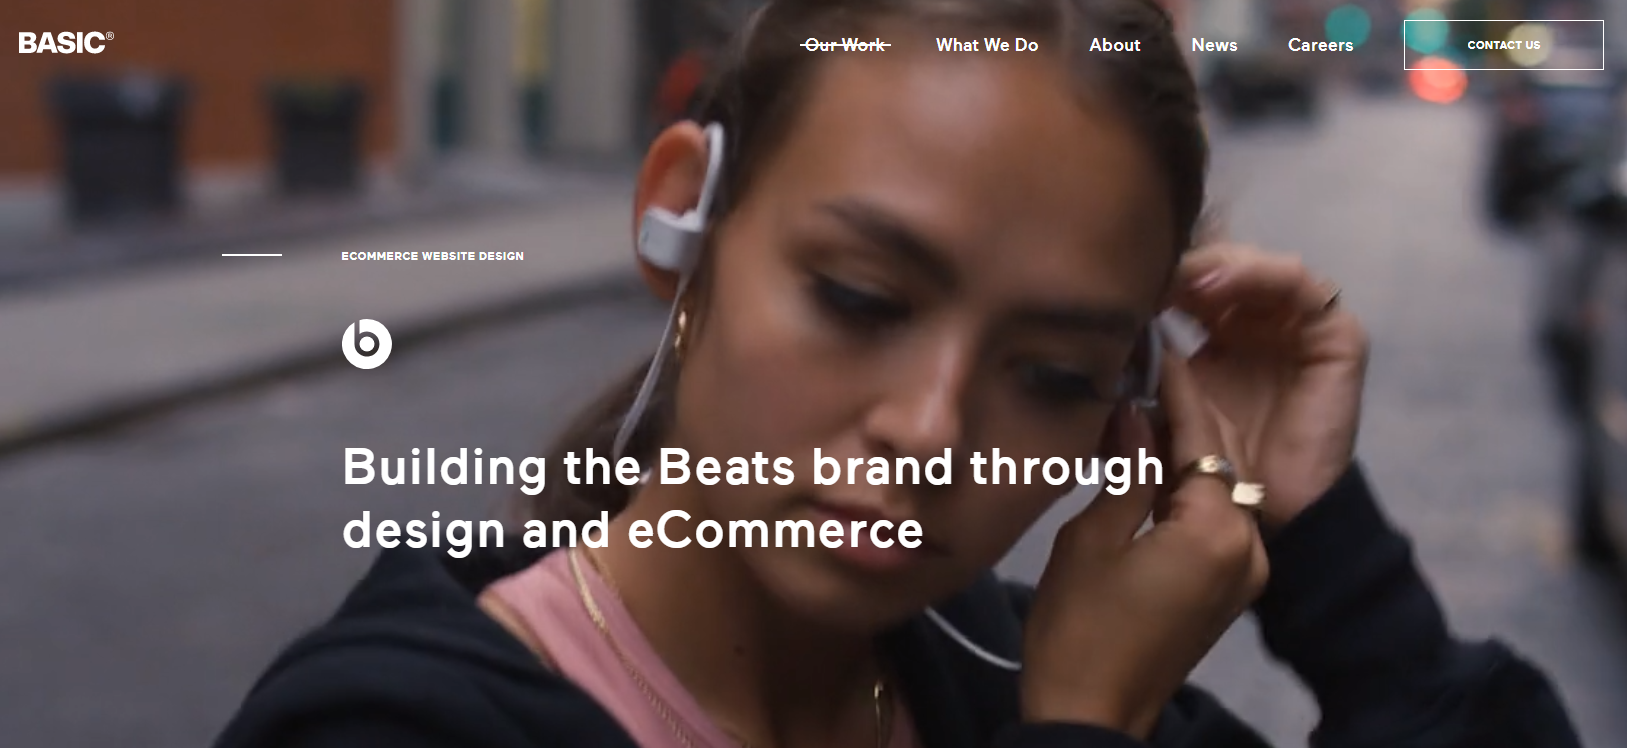 Basic Agency - Beats By Dre